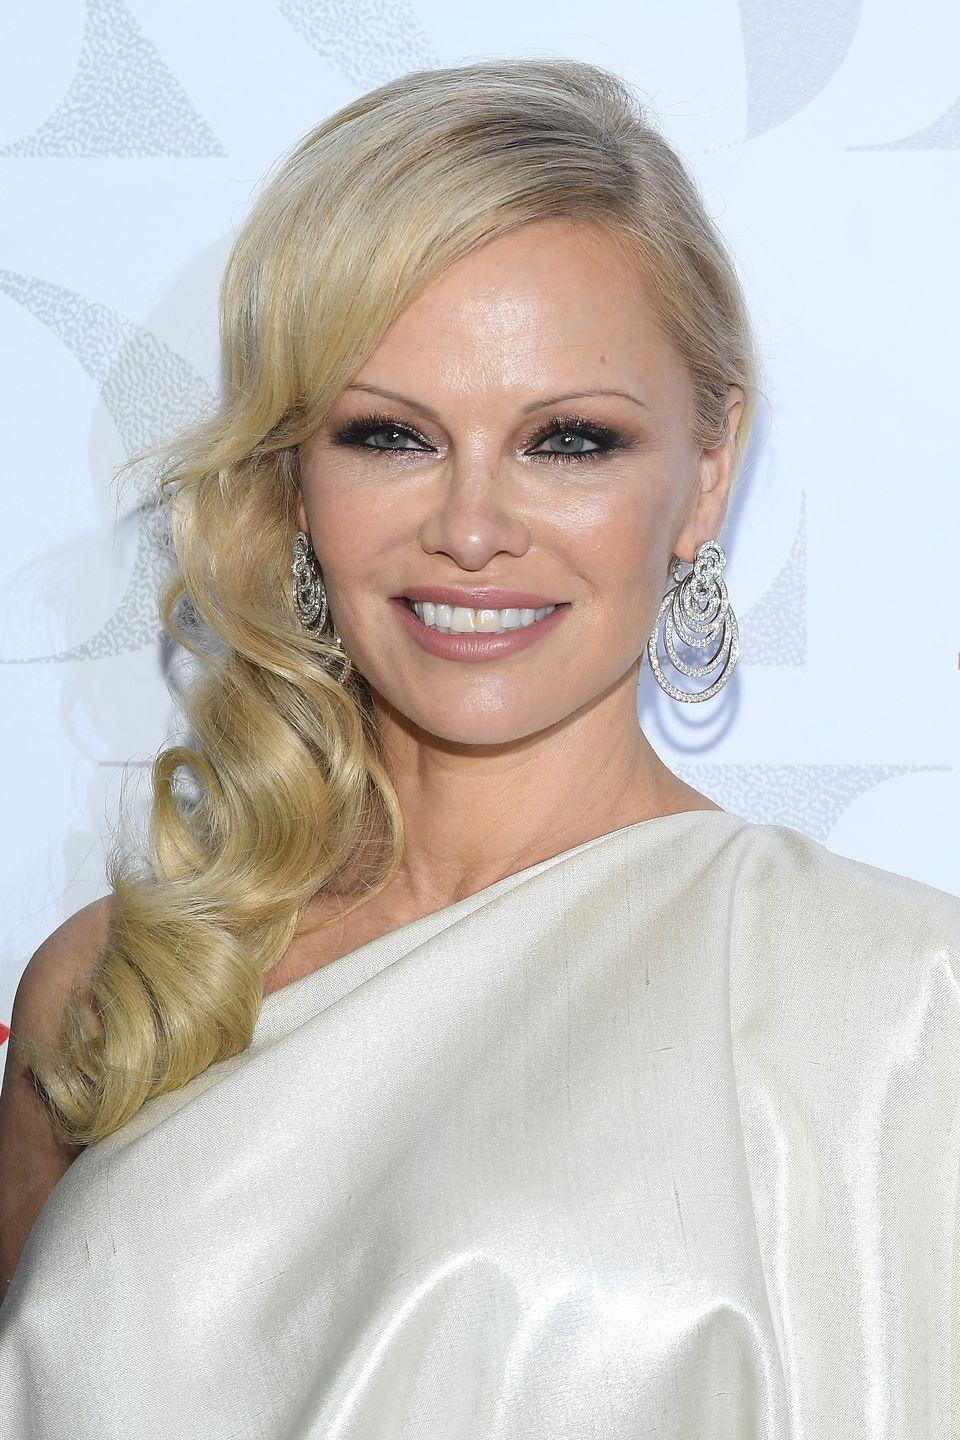 "<p>Pamela Anderson doesn't necessarily regret getting breast implants, but she didn't like how big they were. In 1999, the <em>Baywatch </em>star had them re-augmented to a smaller size. ""I just didn't feel like it looked very good,"" <a href=""https://nypost.com/1999/04/17/pam-my-implant-went-bust/"" rel=""nofollow noopener"" target=""_blank"" data-ylk=""slk:she said at the time"" class=""link rapid-noclick-resp"">she said at the time</a>. ""I was really kind of being self-conscious of it.""</p>"